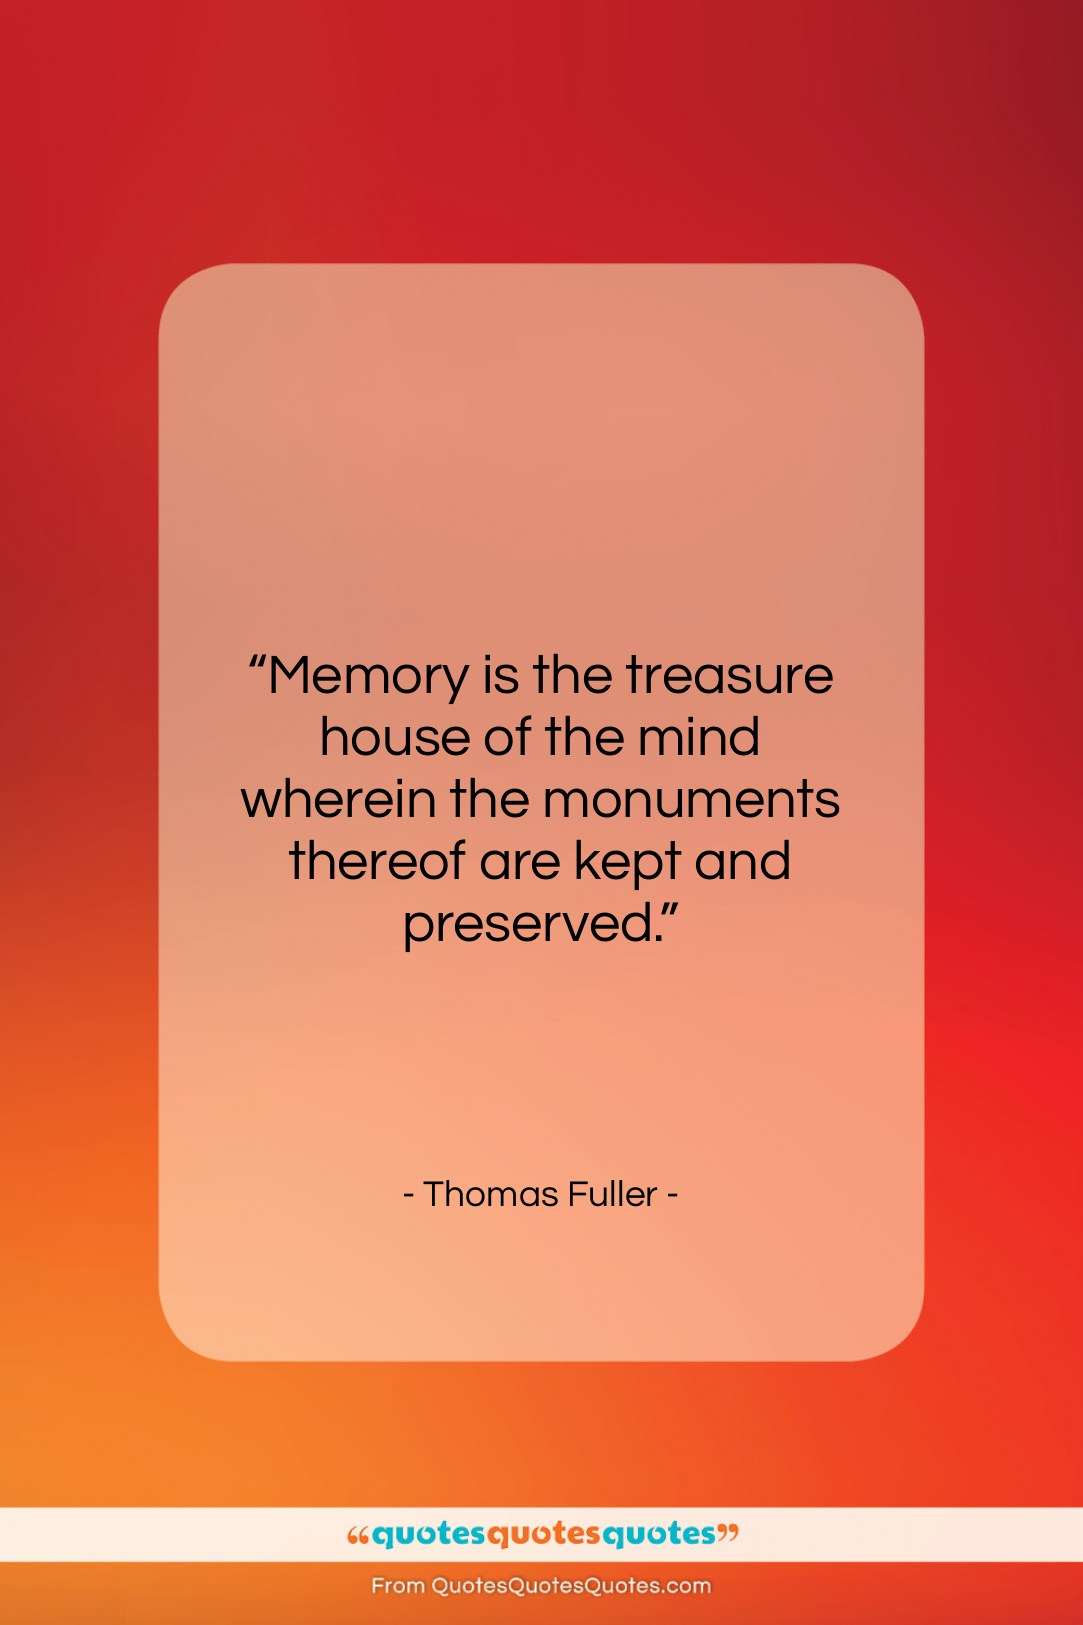 """Thomas Fuller quote: """"Memory is the treasure house of the…""""- at QuotesQuotesQuotes.com"""